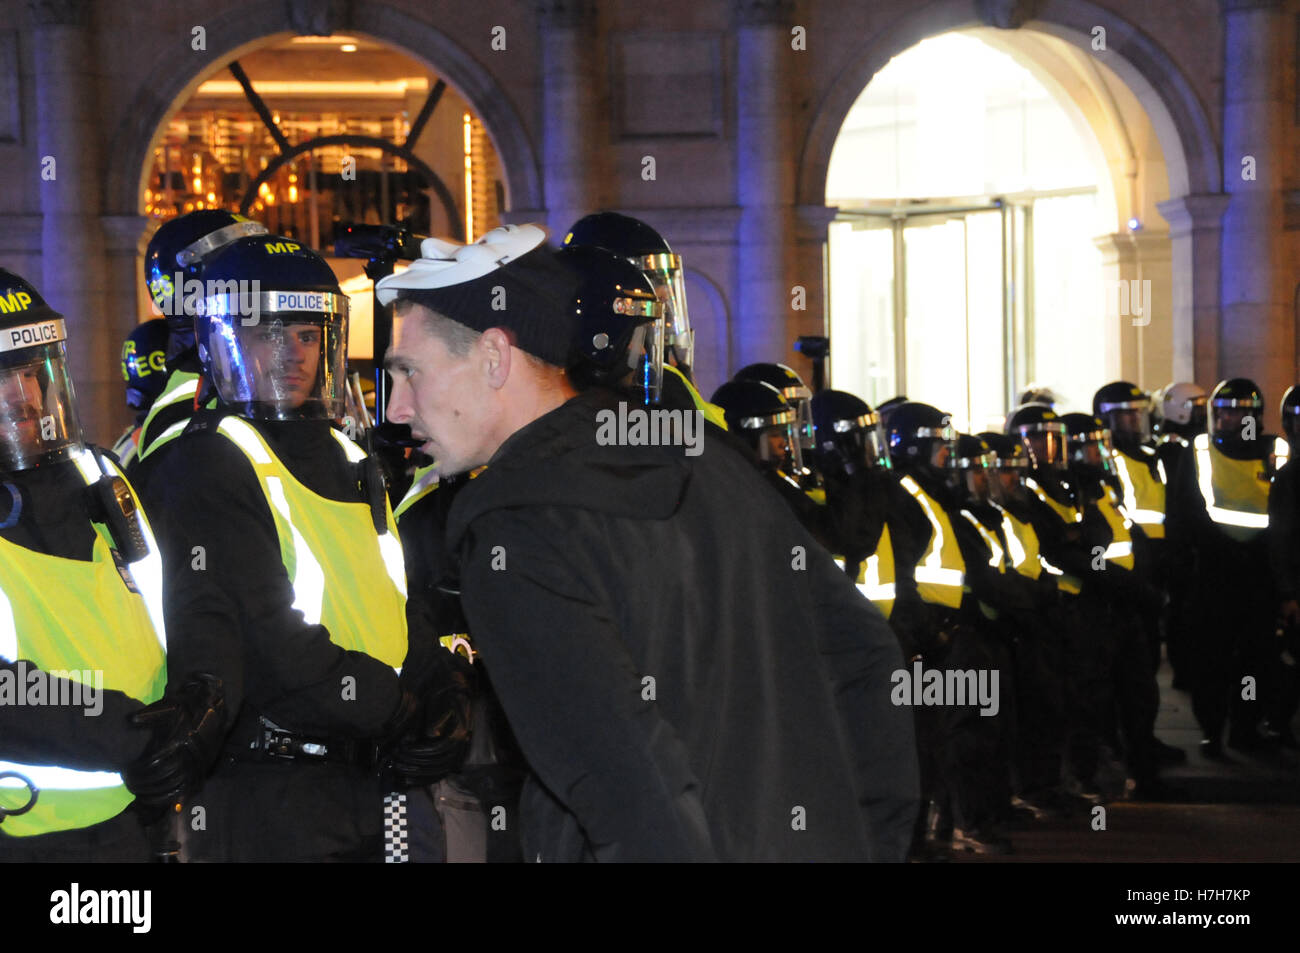 London, UK, 5th November, 2016. A protester makes an attempt to provoke the police, at last night's Million Mask Stock Photo